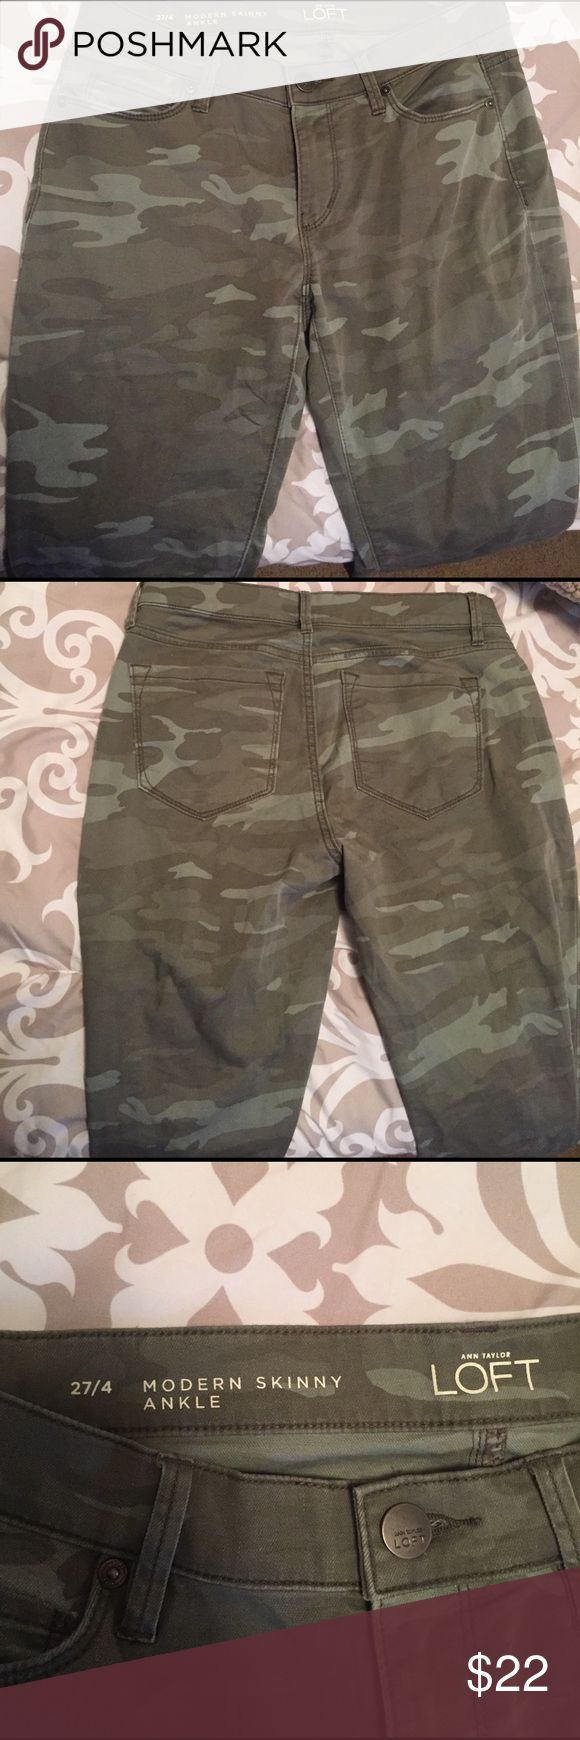 """Loft Camo skinny pants size 27/4 These are a pair of green Camo Loft Brand modern ankle skinny pants. Size 27/4. Ankle zippers. Cotton/rayon/spandex. 27"""" inseam. Smoke free home. LOFT Pants Skinny"""